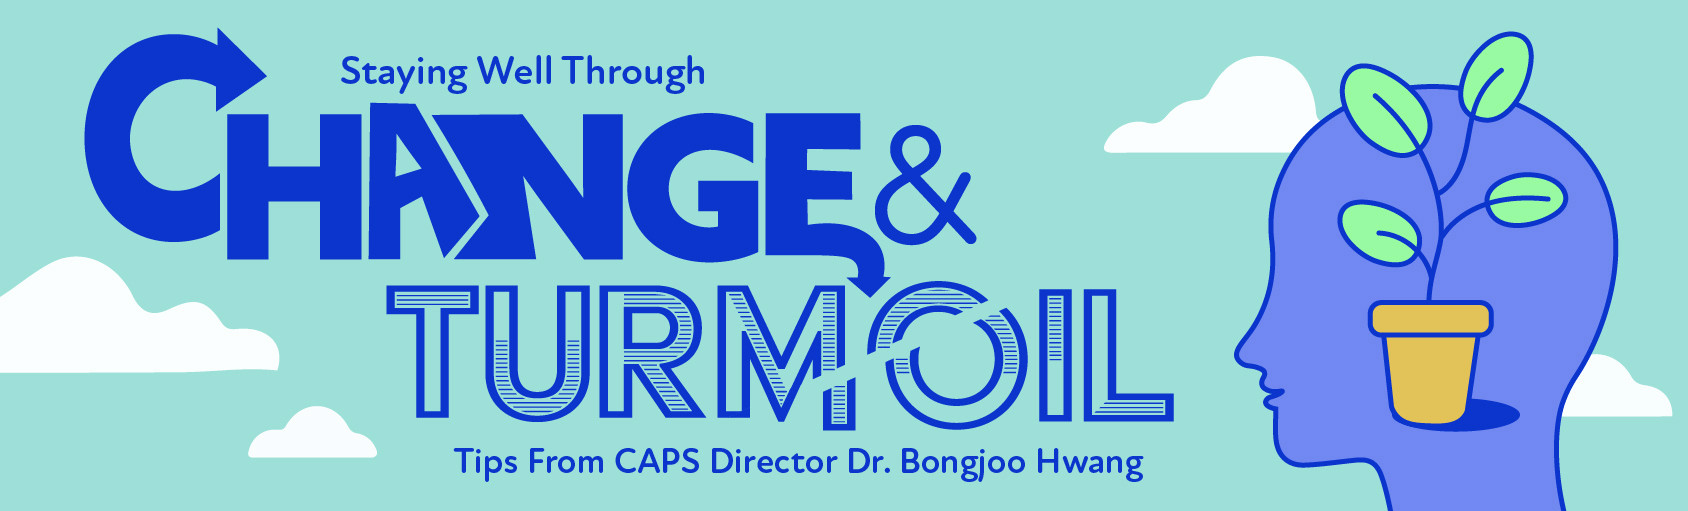 Staying Well Through Change & Turmoil - Tips From CAPS Director Dr. Bongjoo Hwang banner